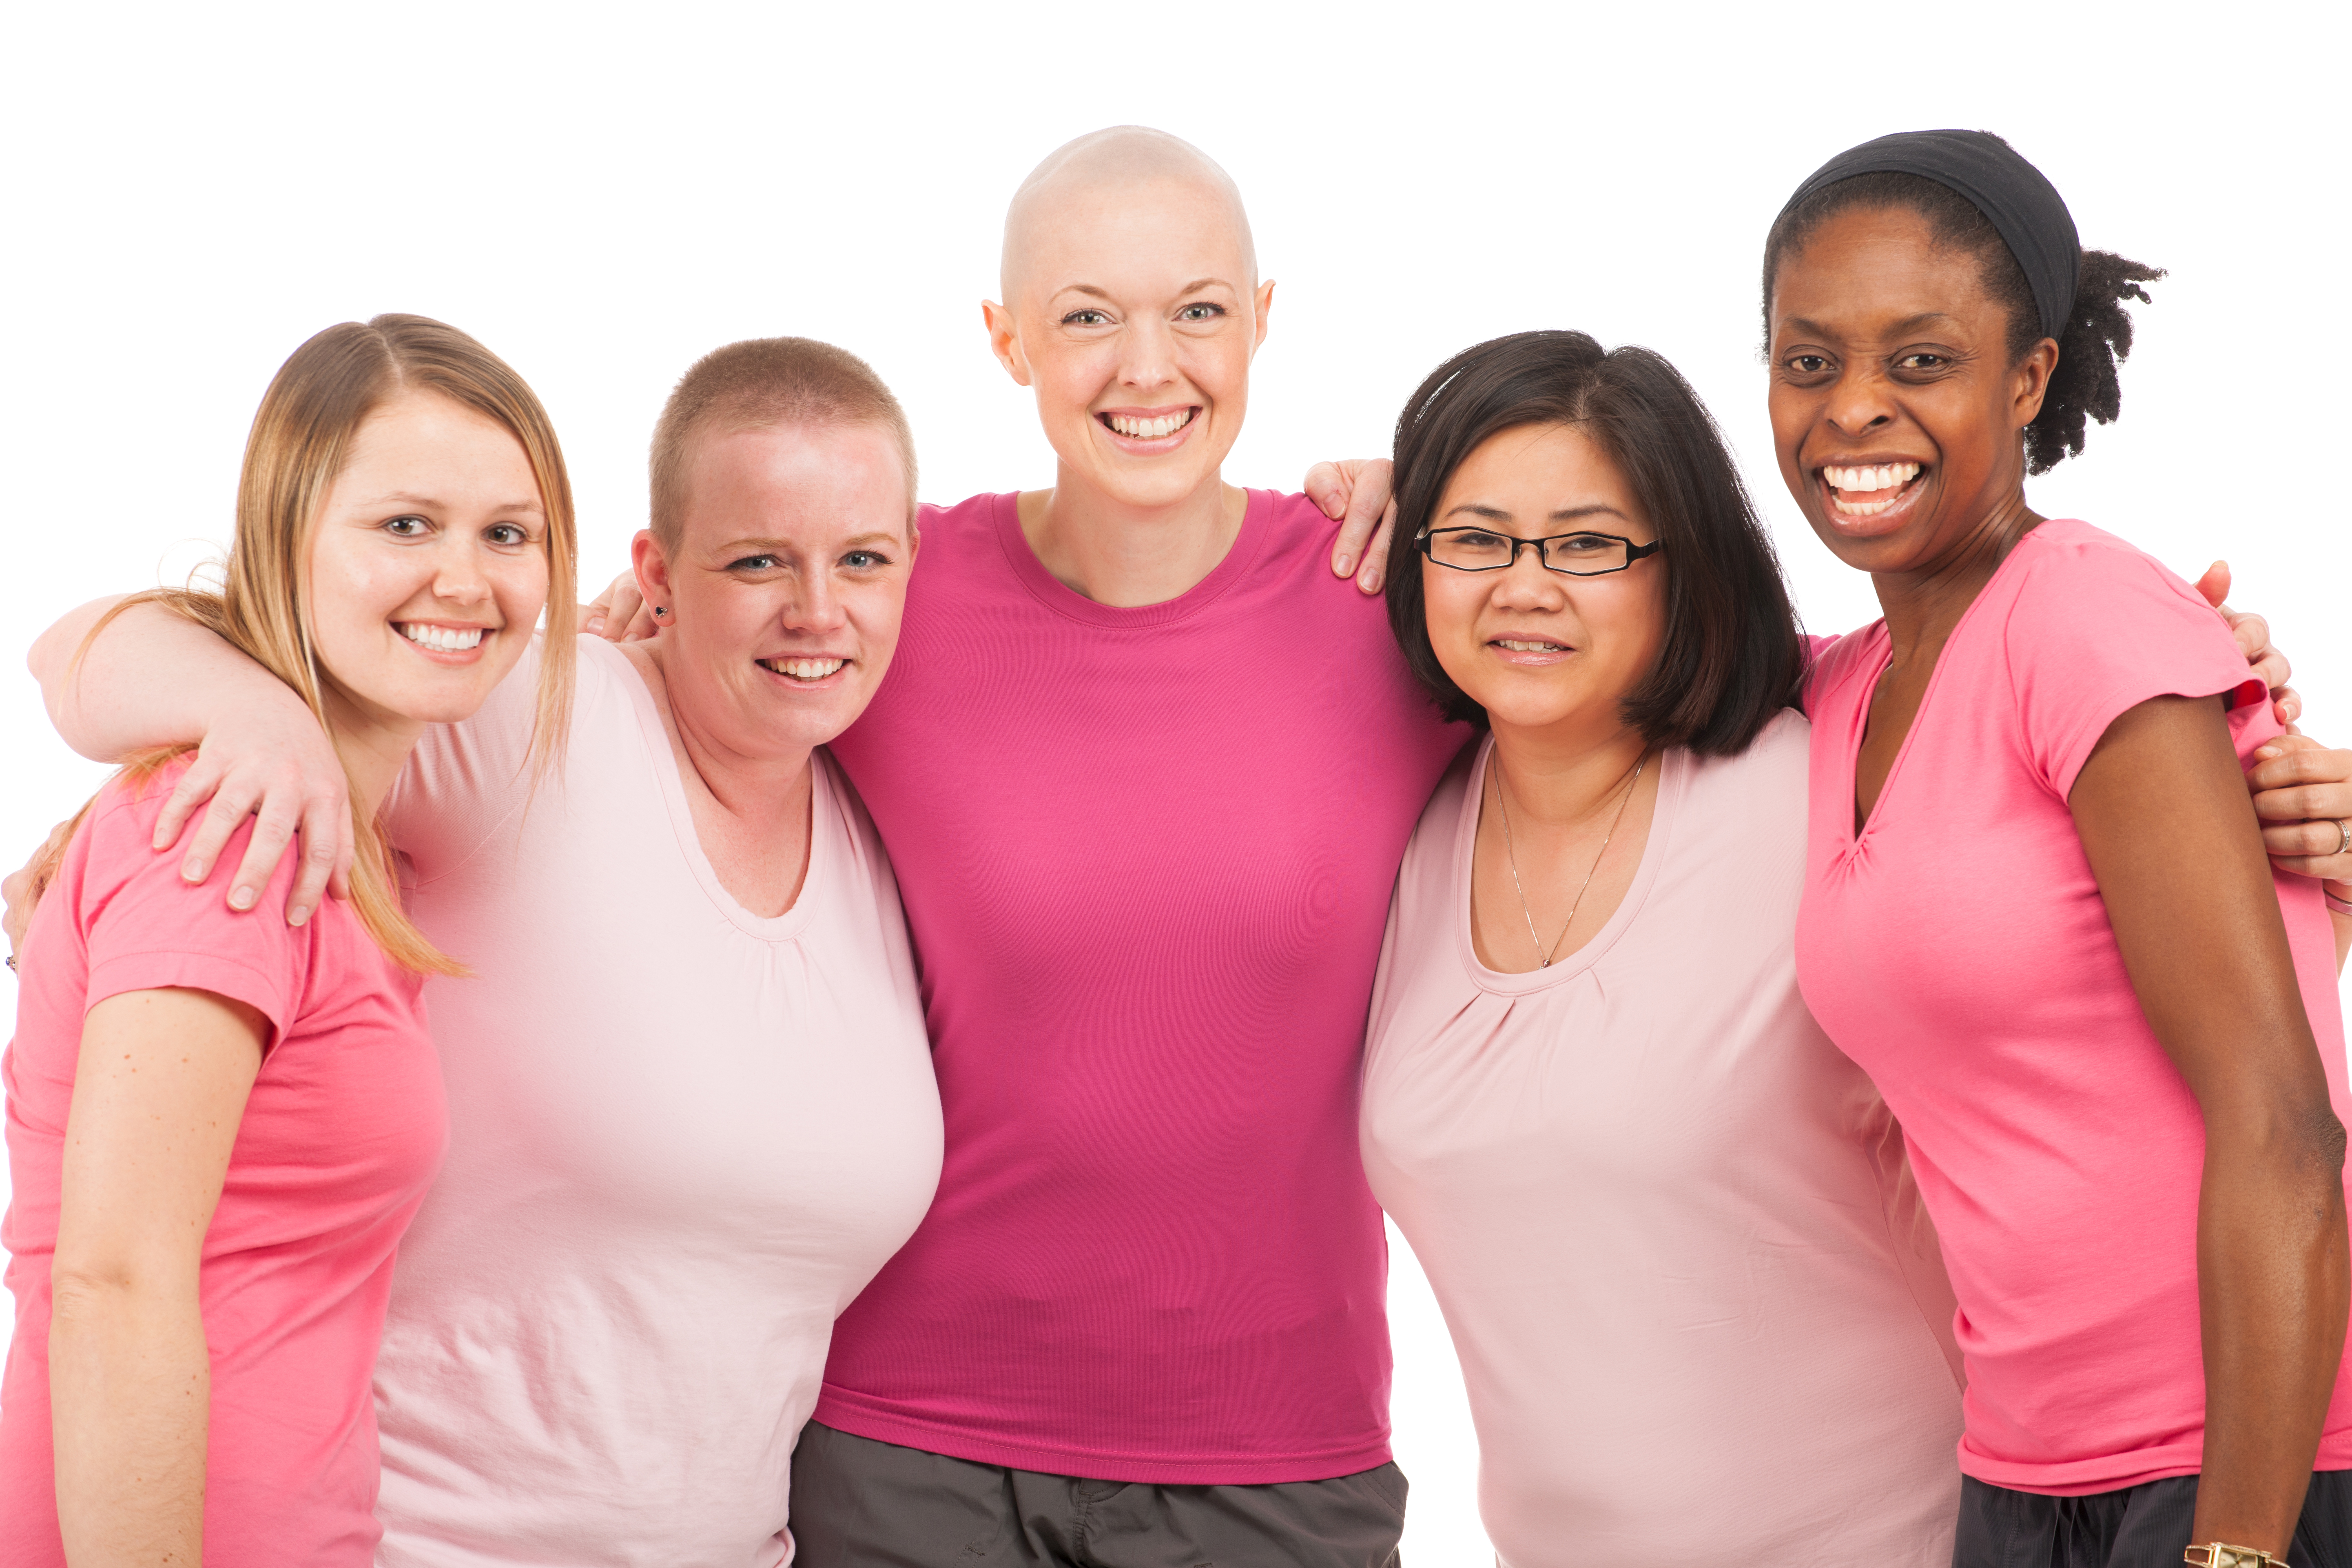 Cancer Support Group for Young Women